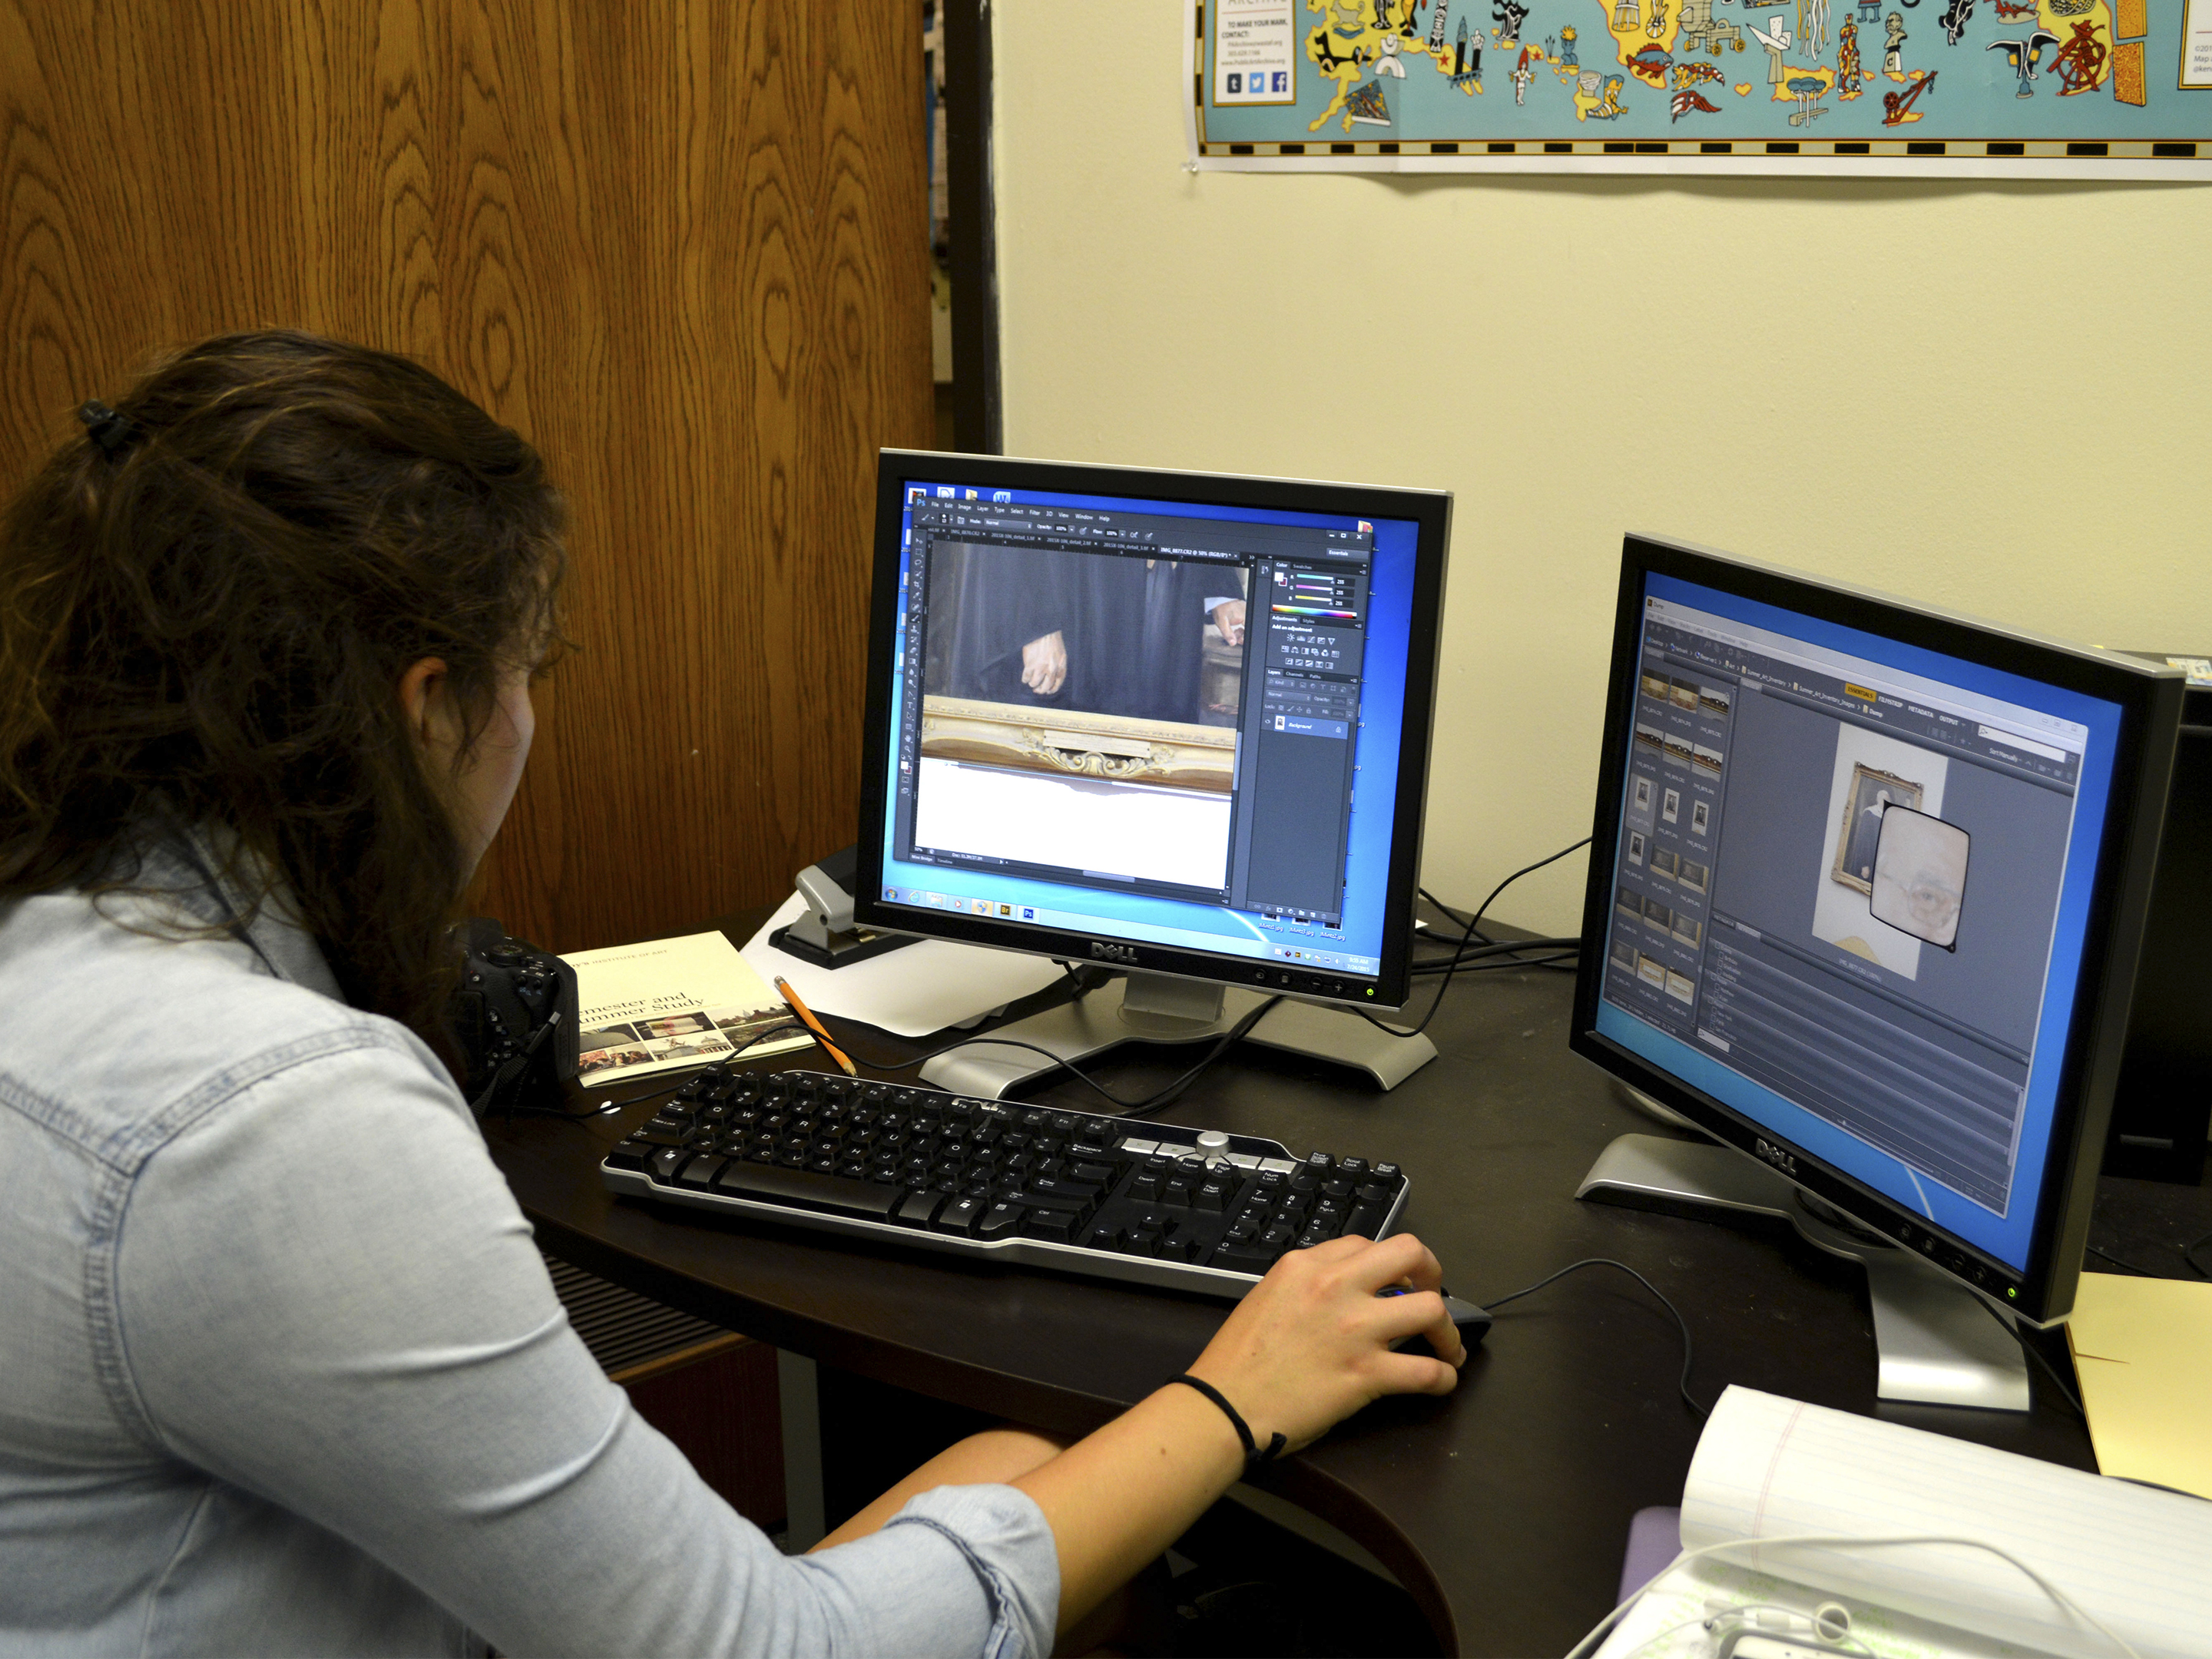 A dark haired young woman works at a computer with two screens